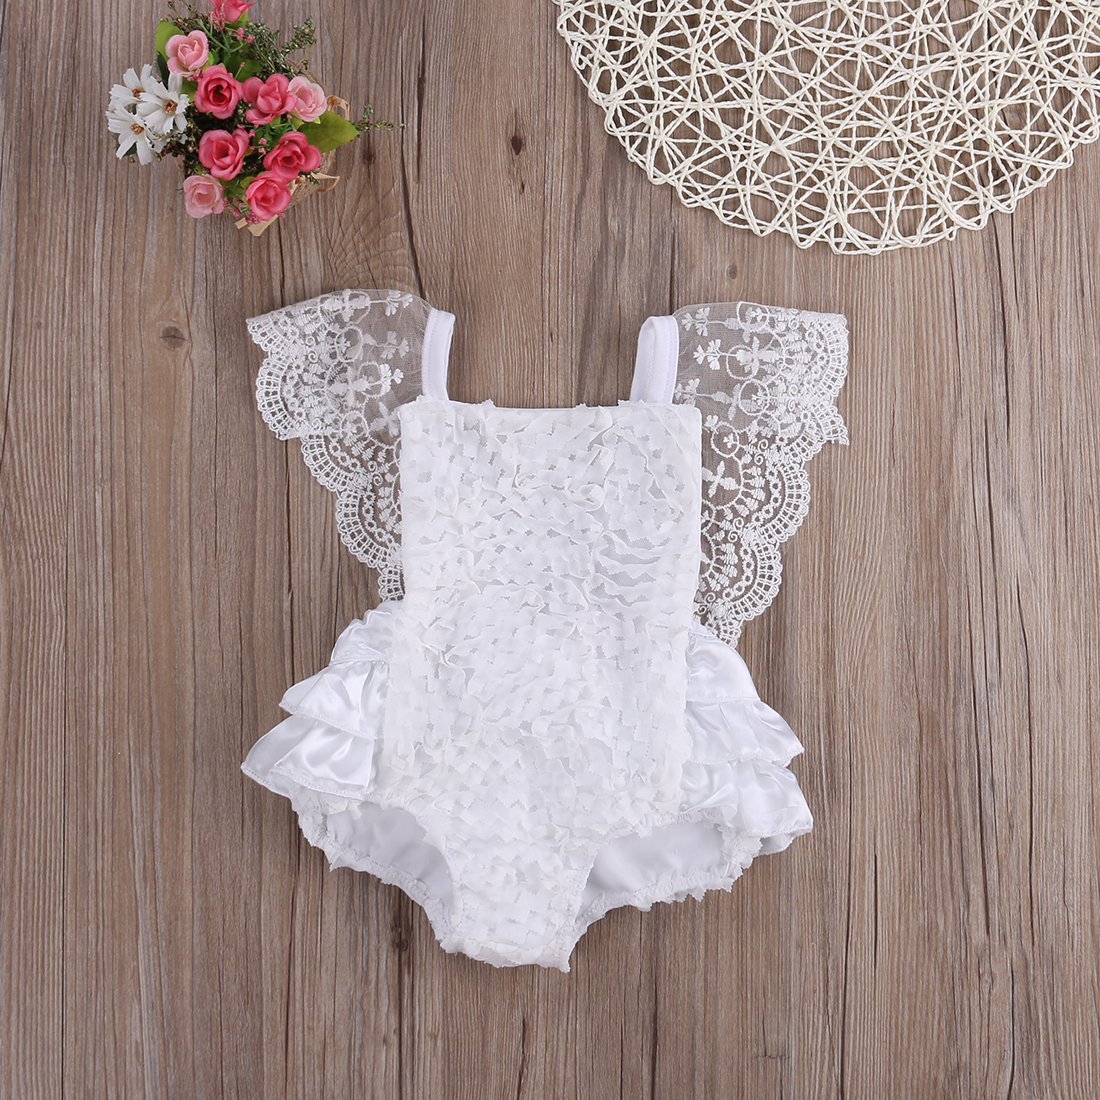 Cute Newborn Infant Baby Girl Clothes Lace Tutu Romper -2356